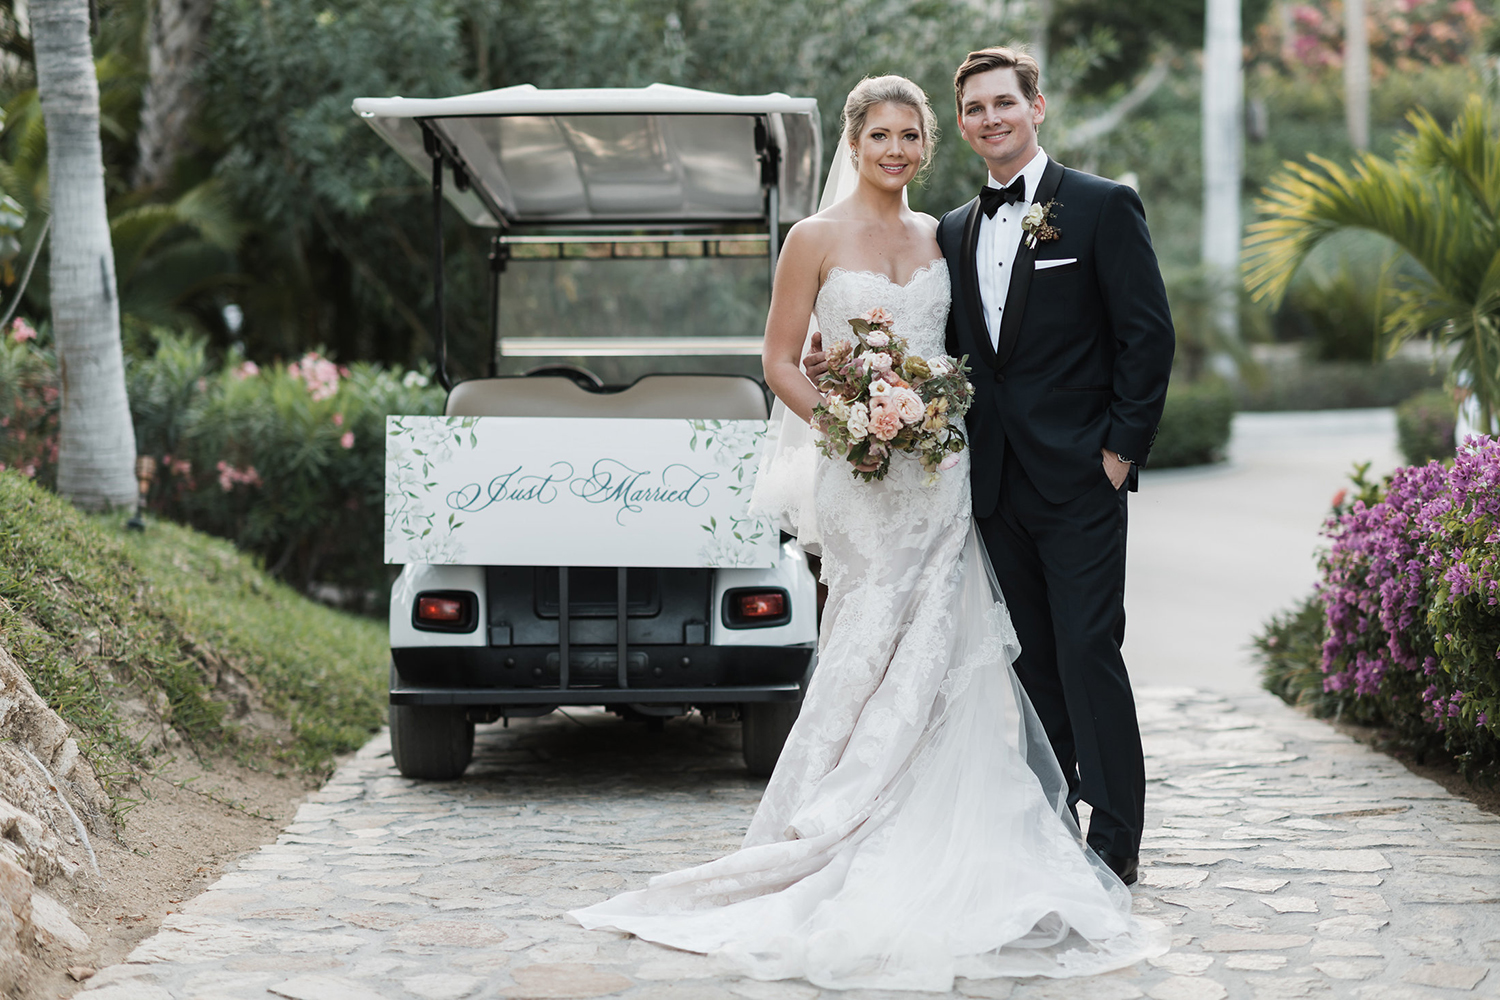 golf cart decorated for just married newlyweds